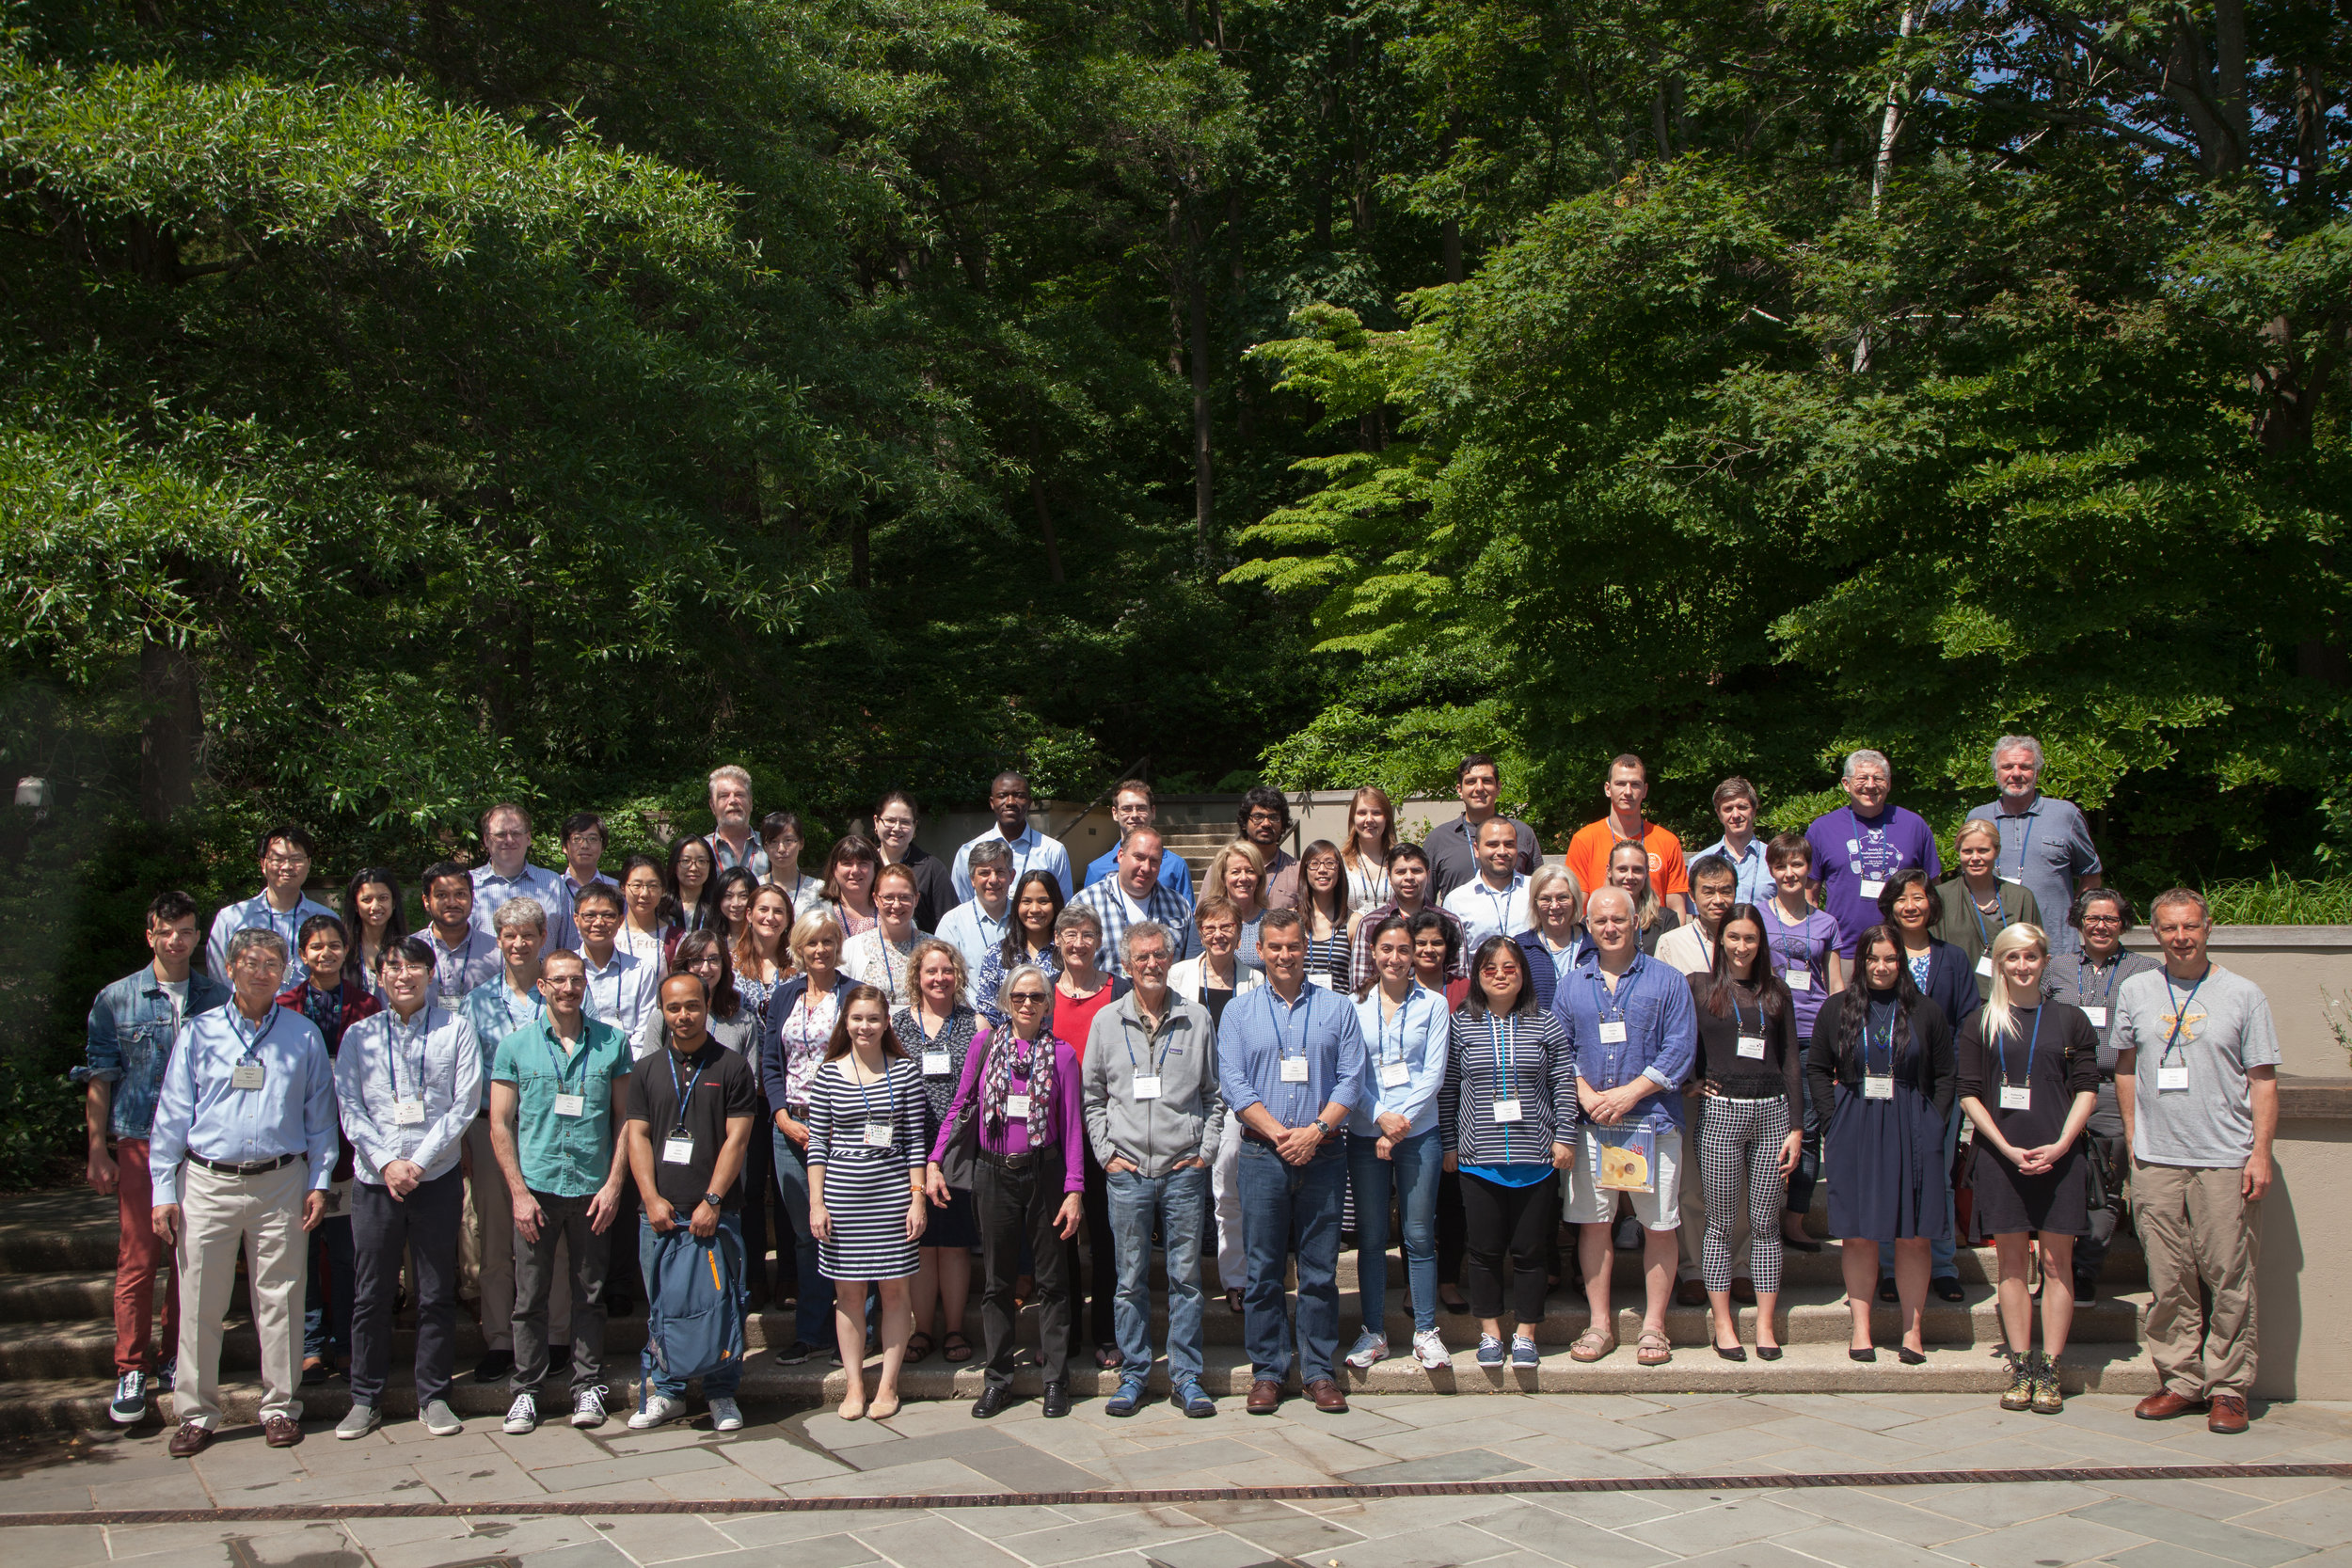 cshl-mouse-course-35-anniversary-symposium-group